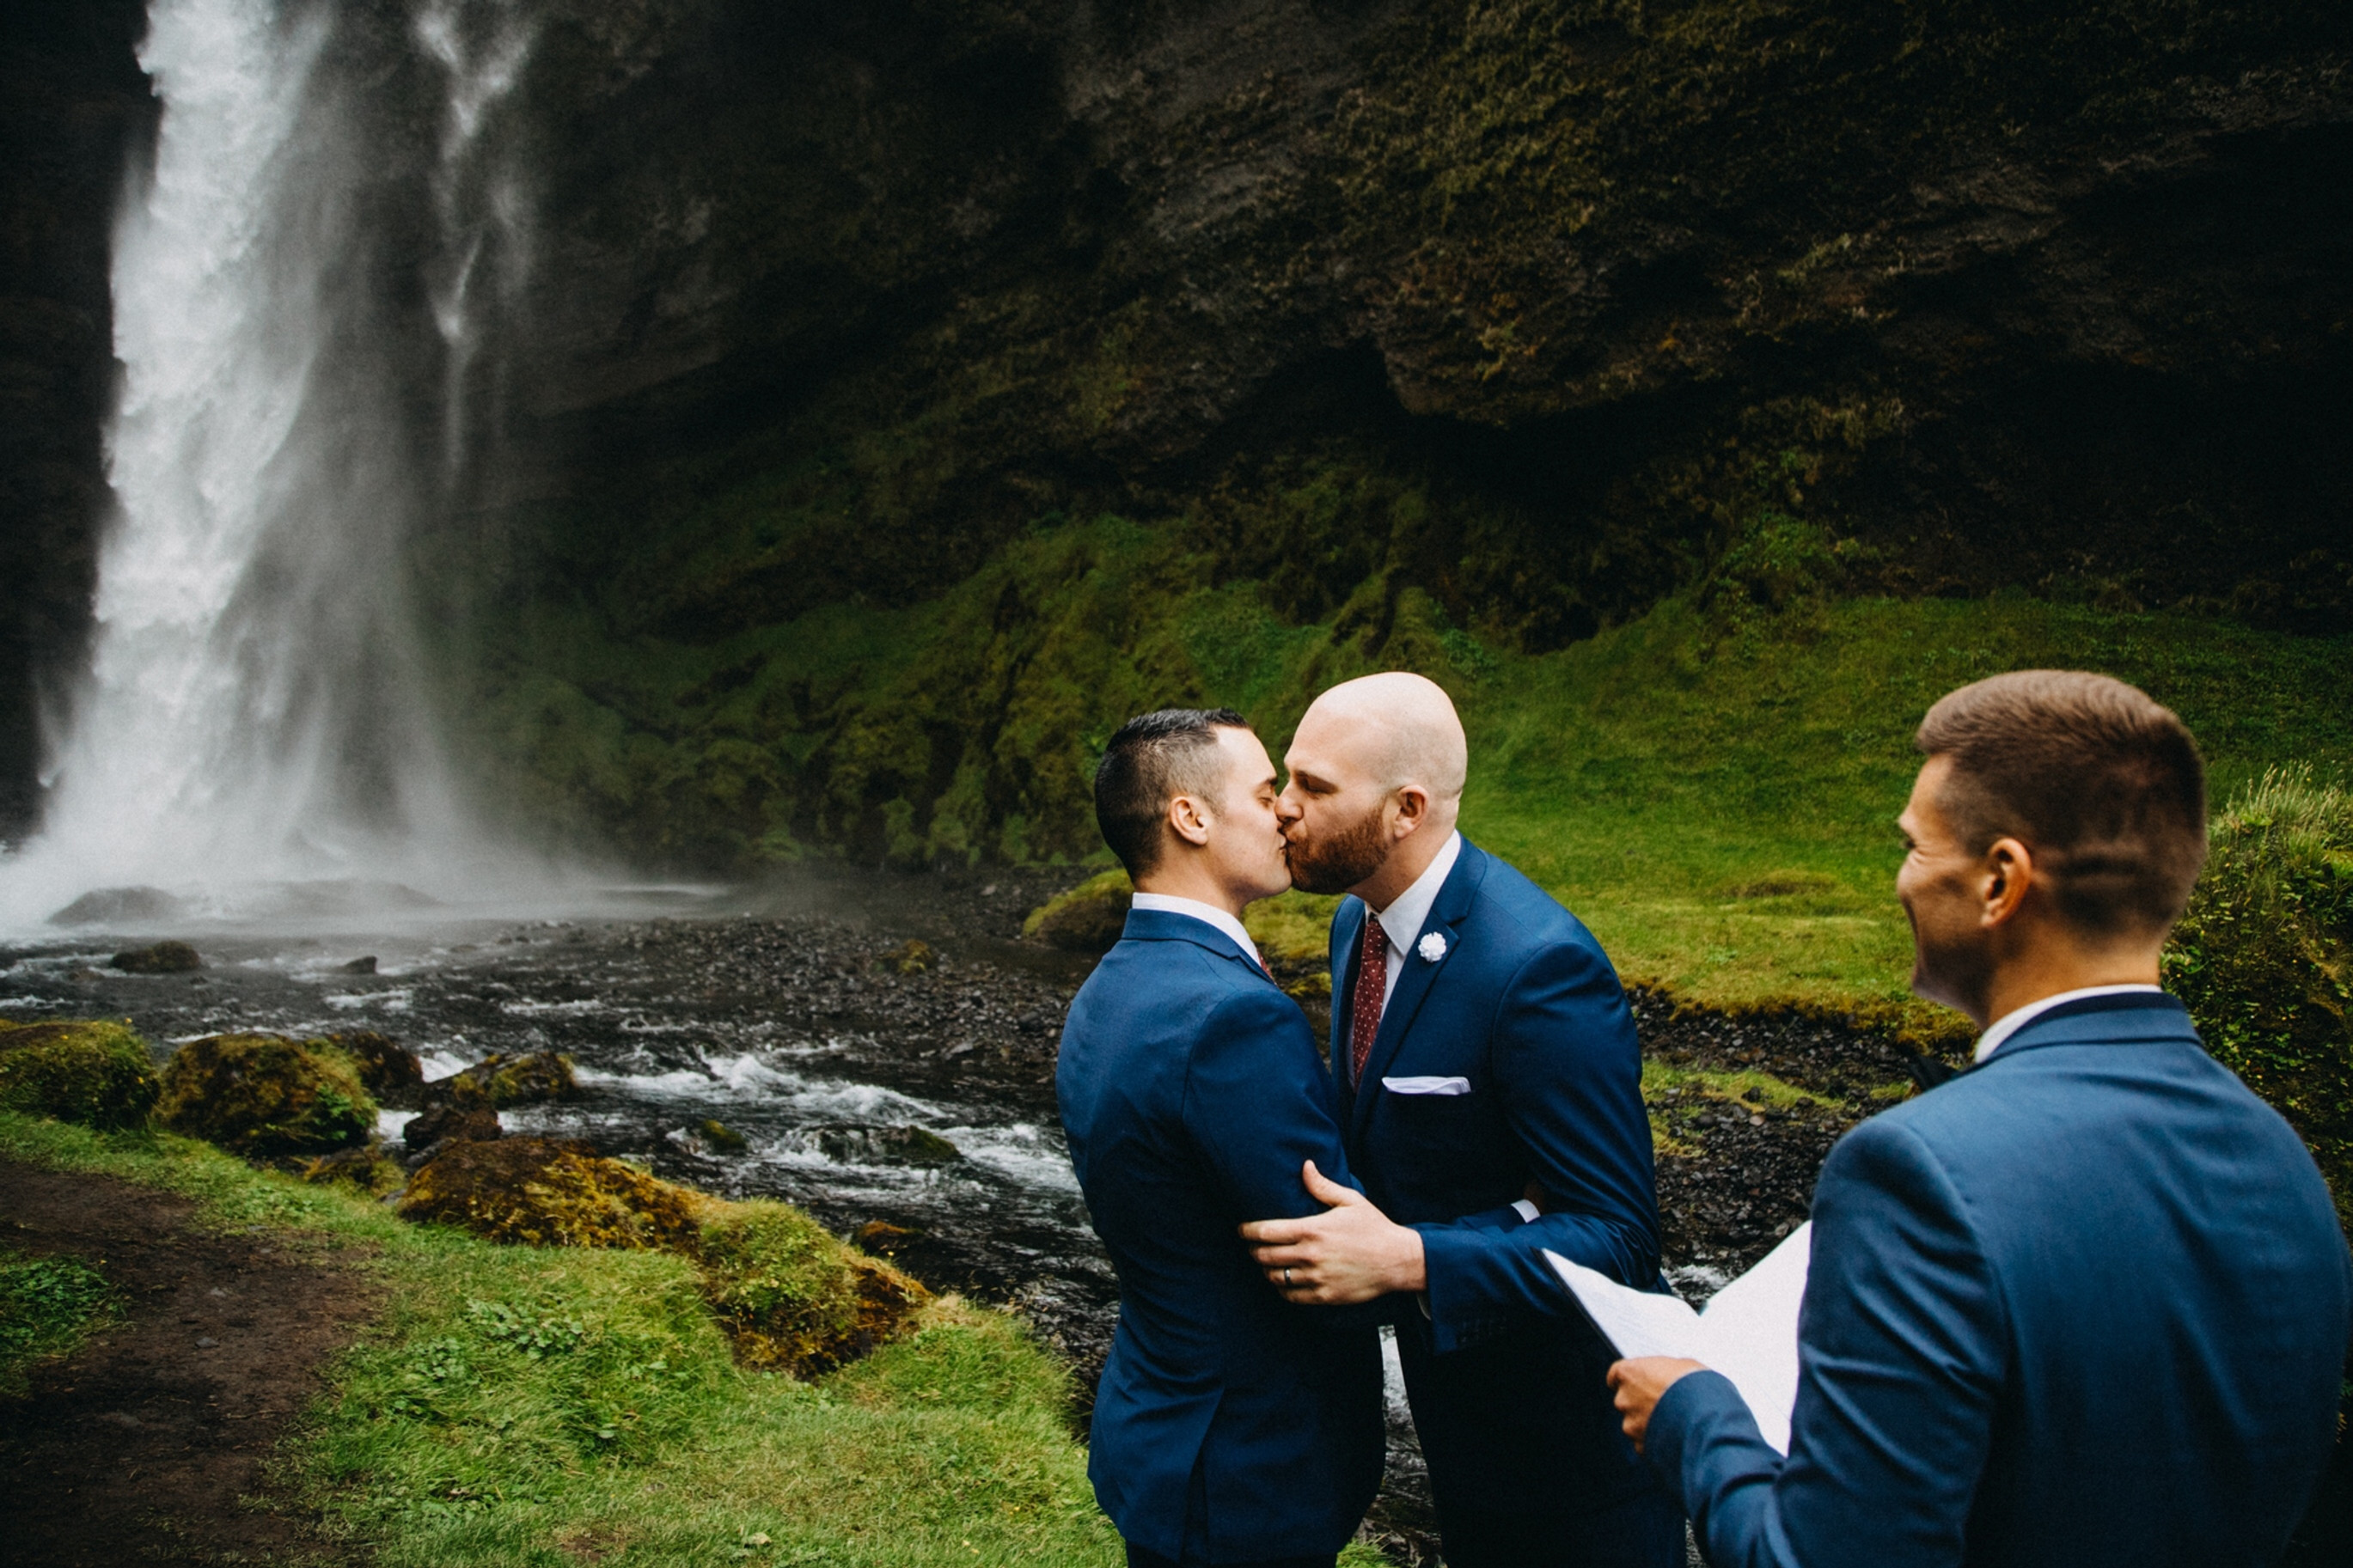 Single Day Elopement